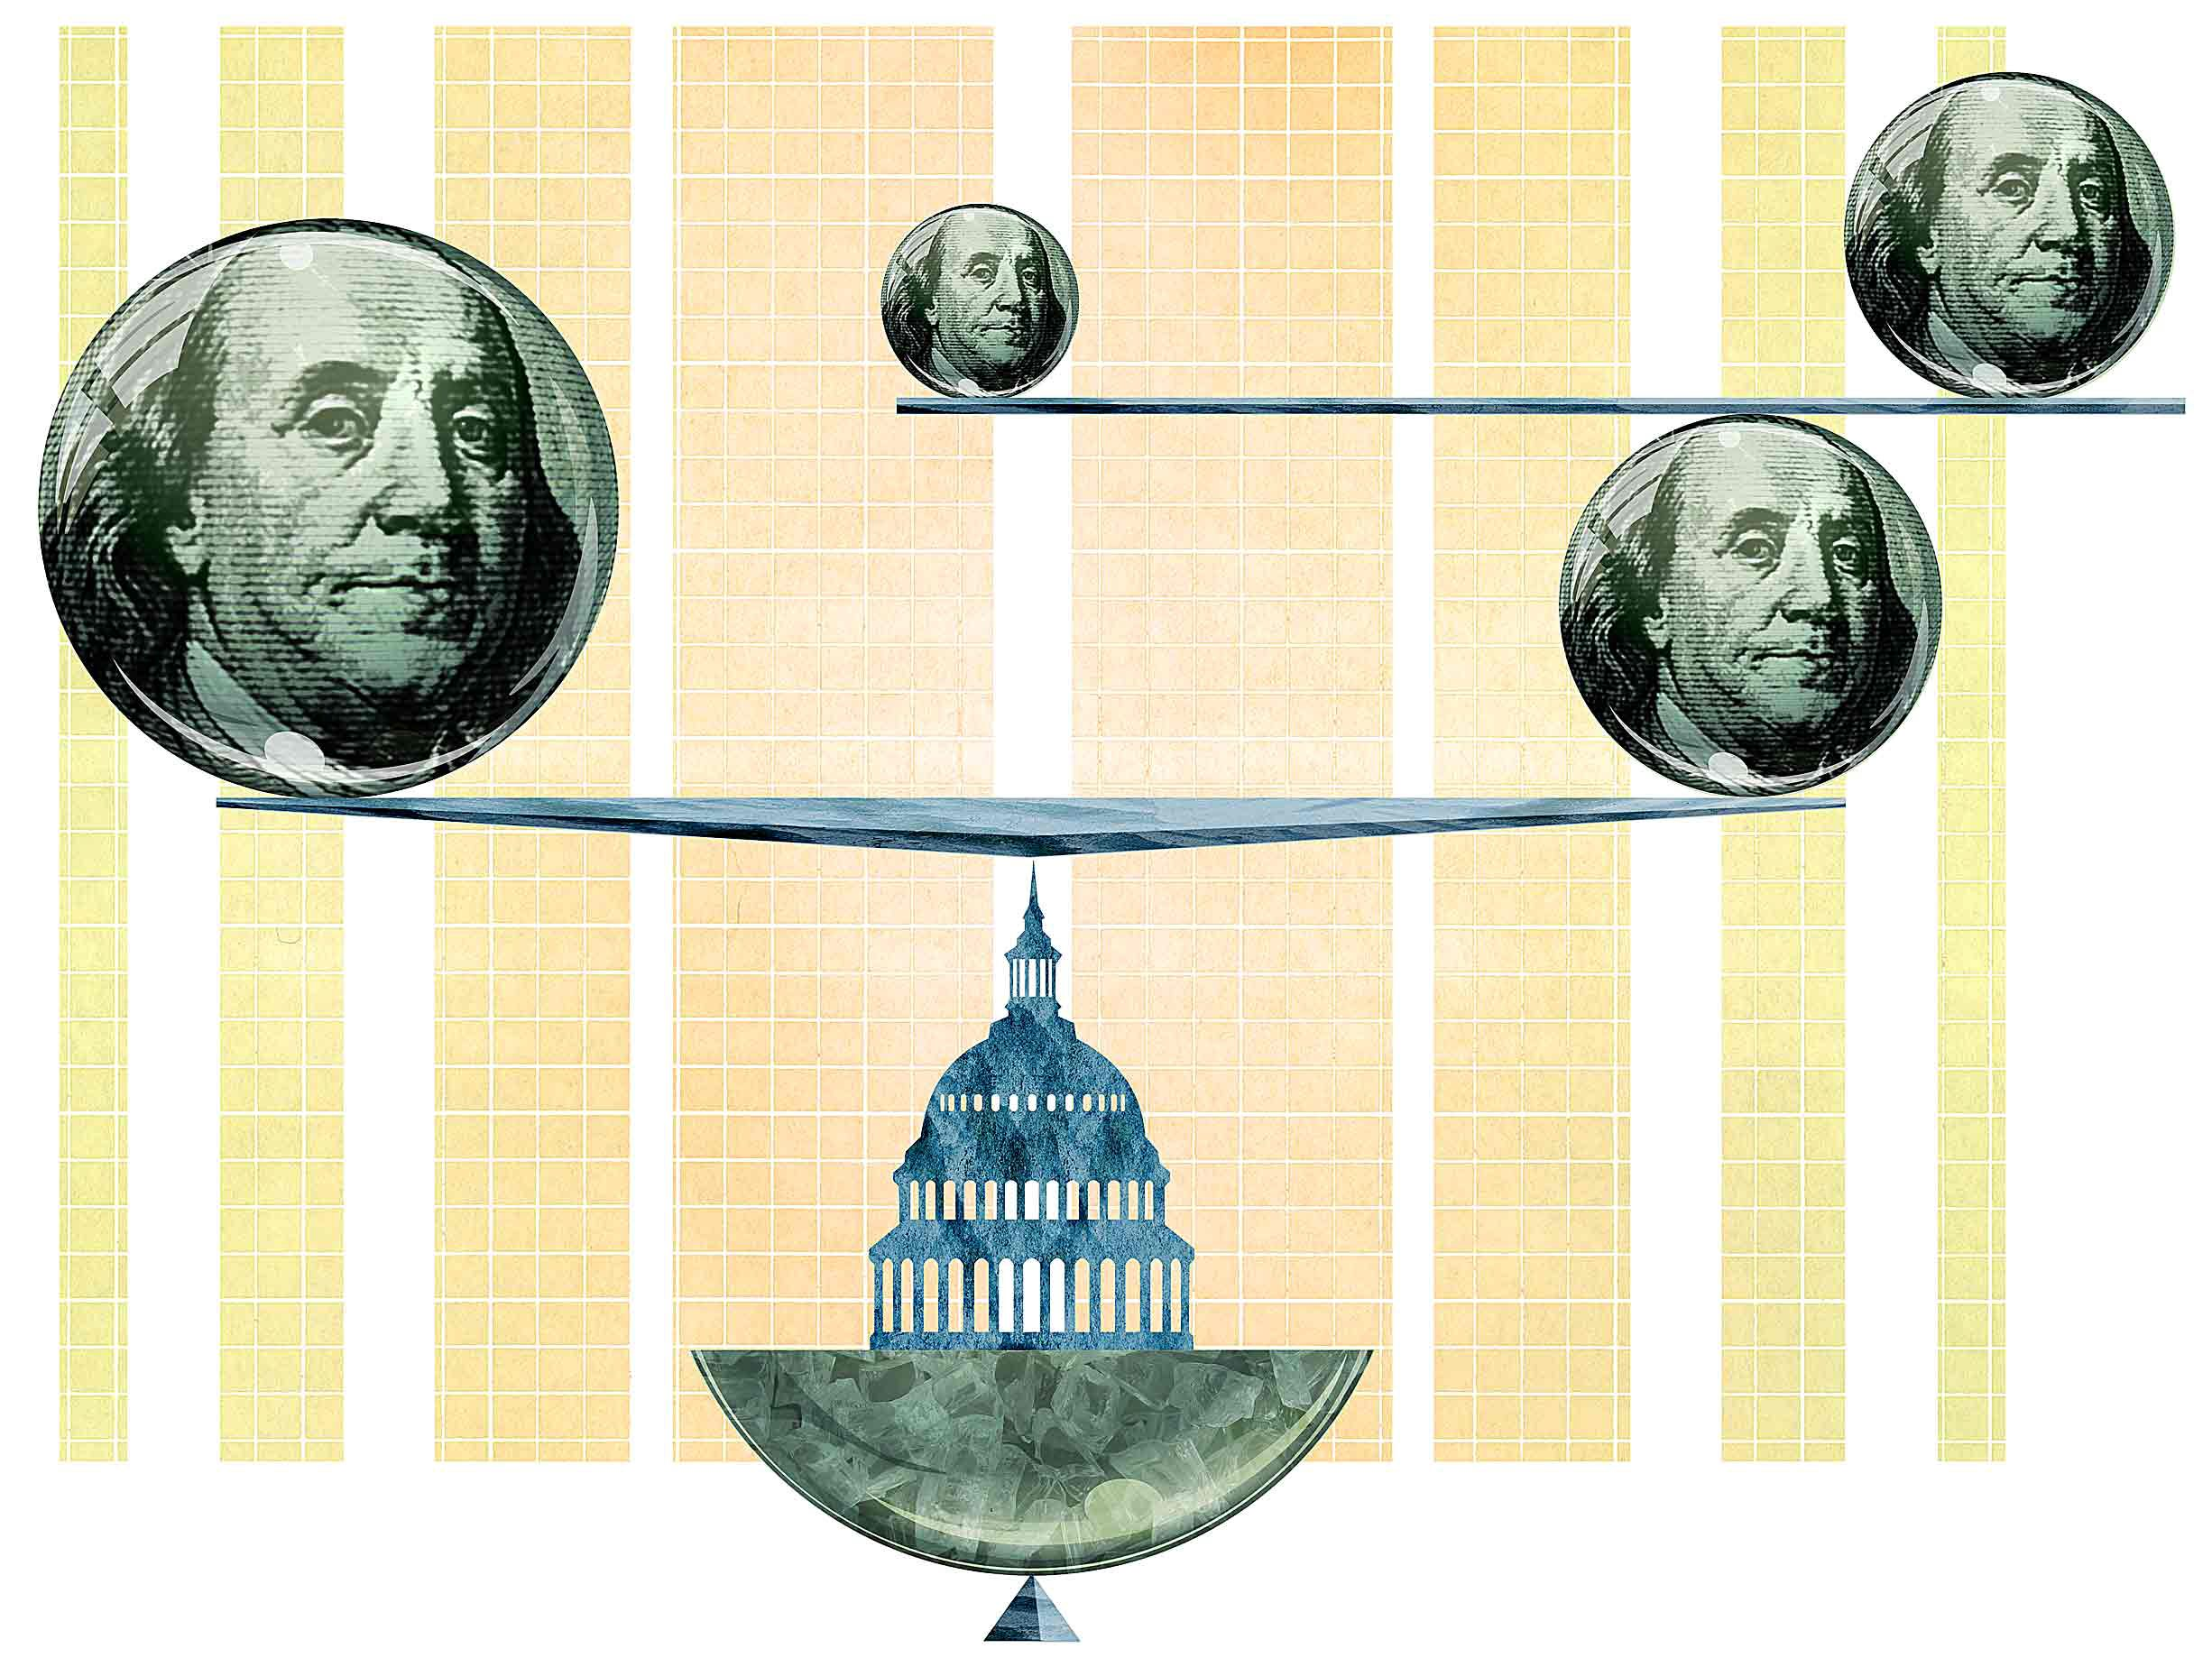 America's national debt has risen to dangerous levels, and spending must be restrained